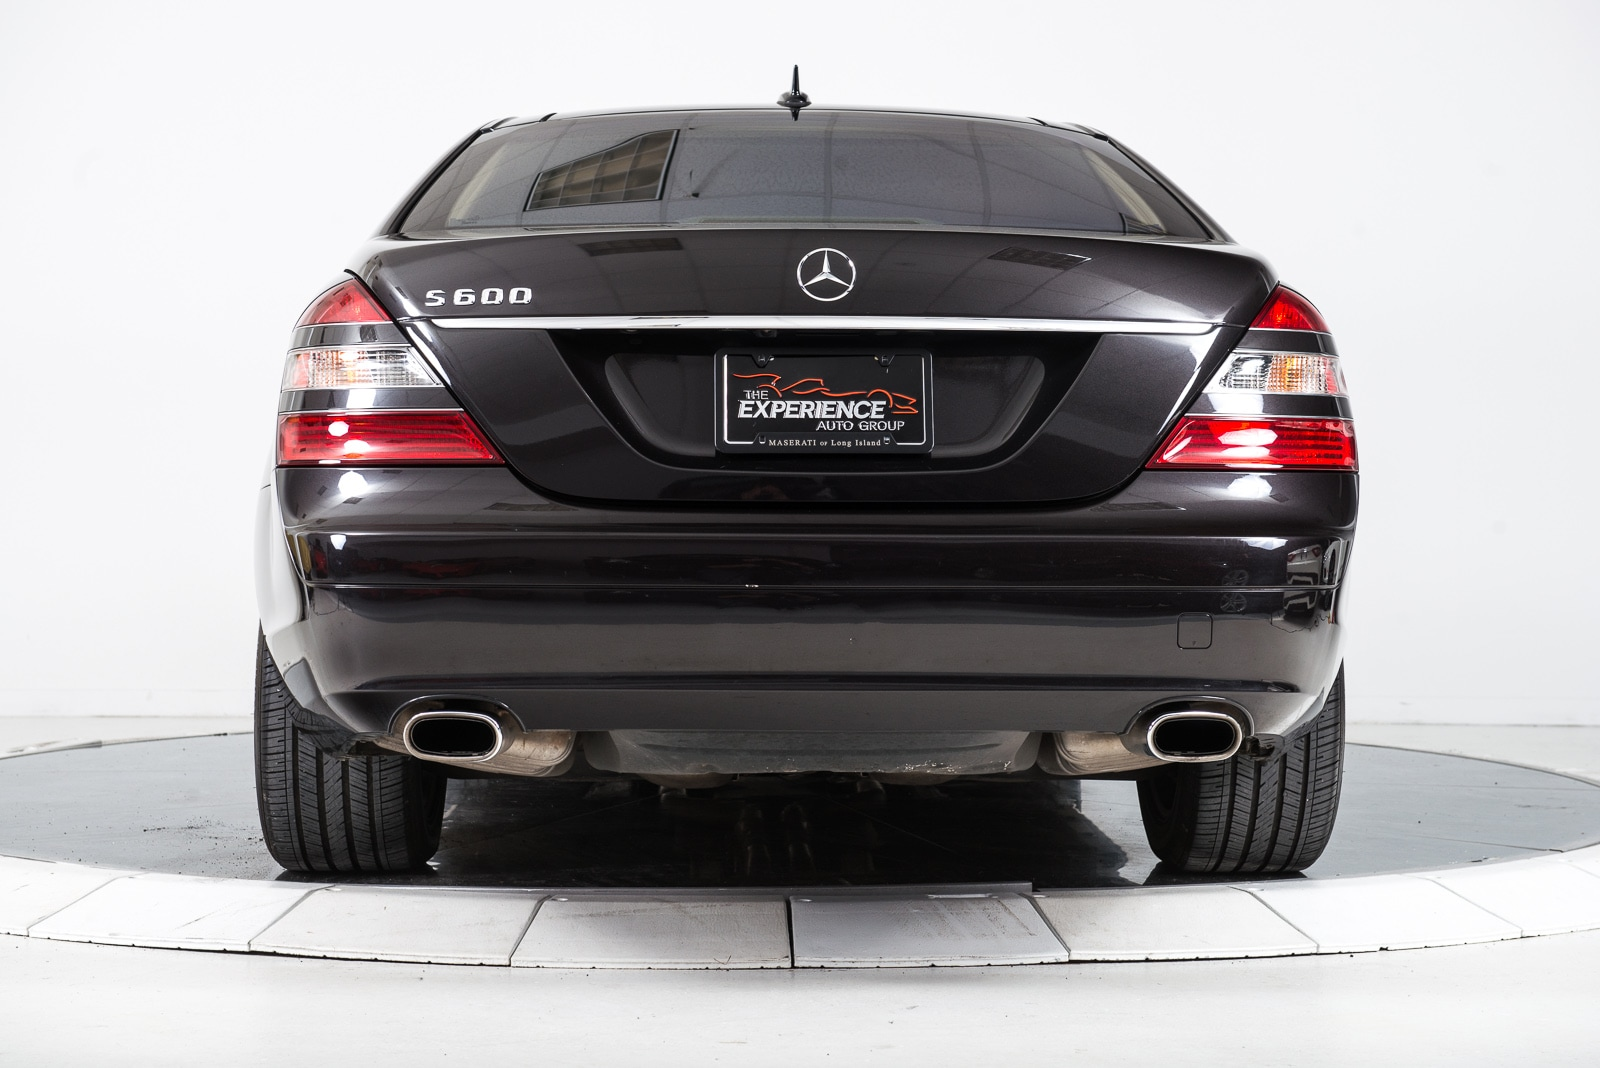 Used 2007 MERCEDES-BENZ S600 For Sale | Plainview near ...